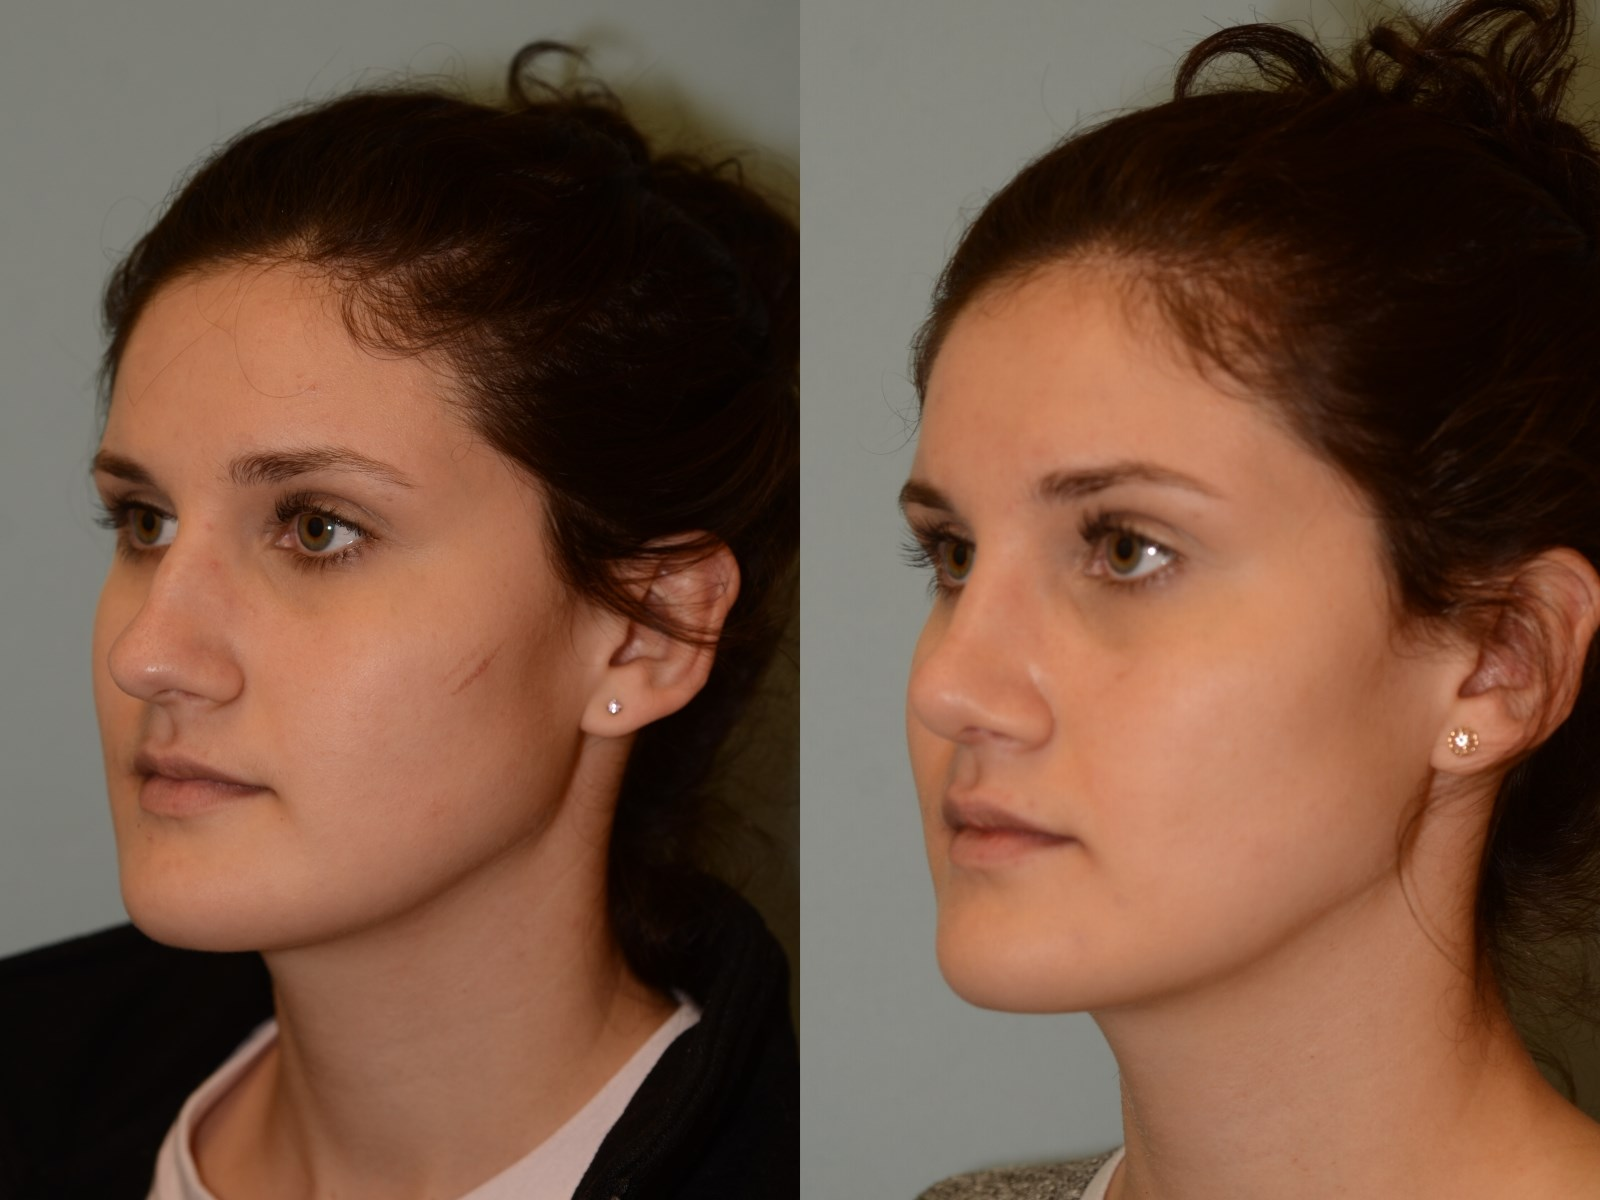 A soft feminine nasal slope Before and After